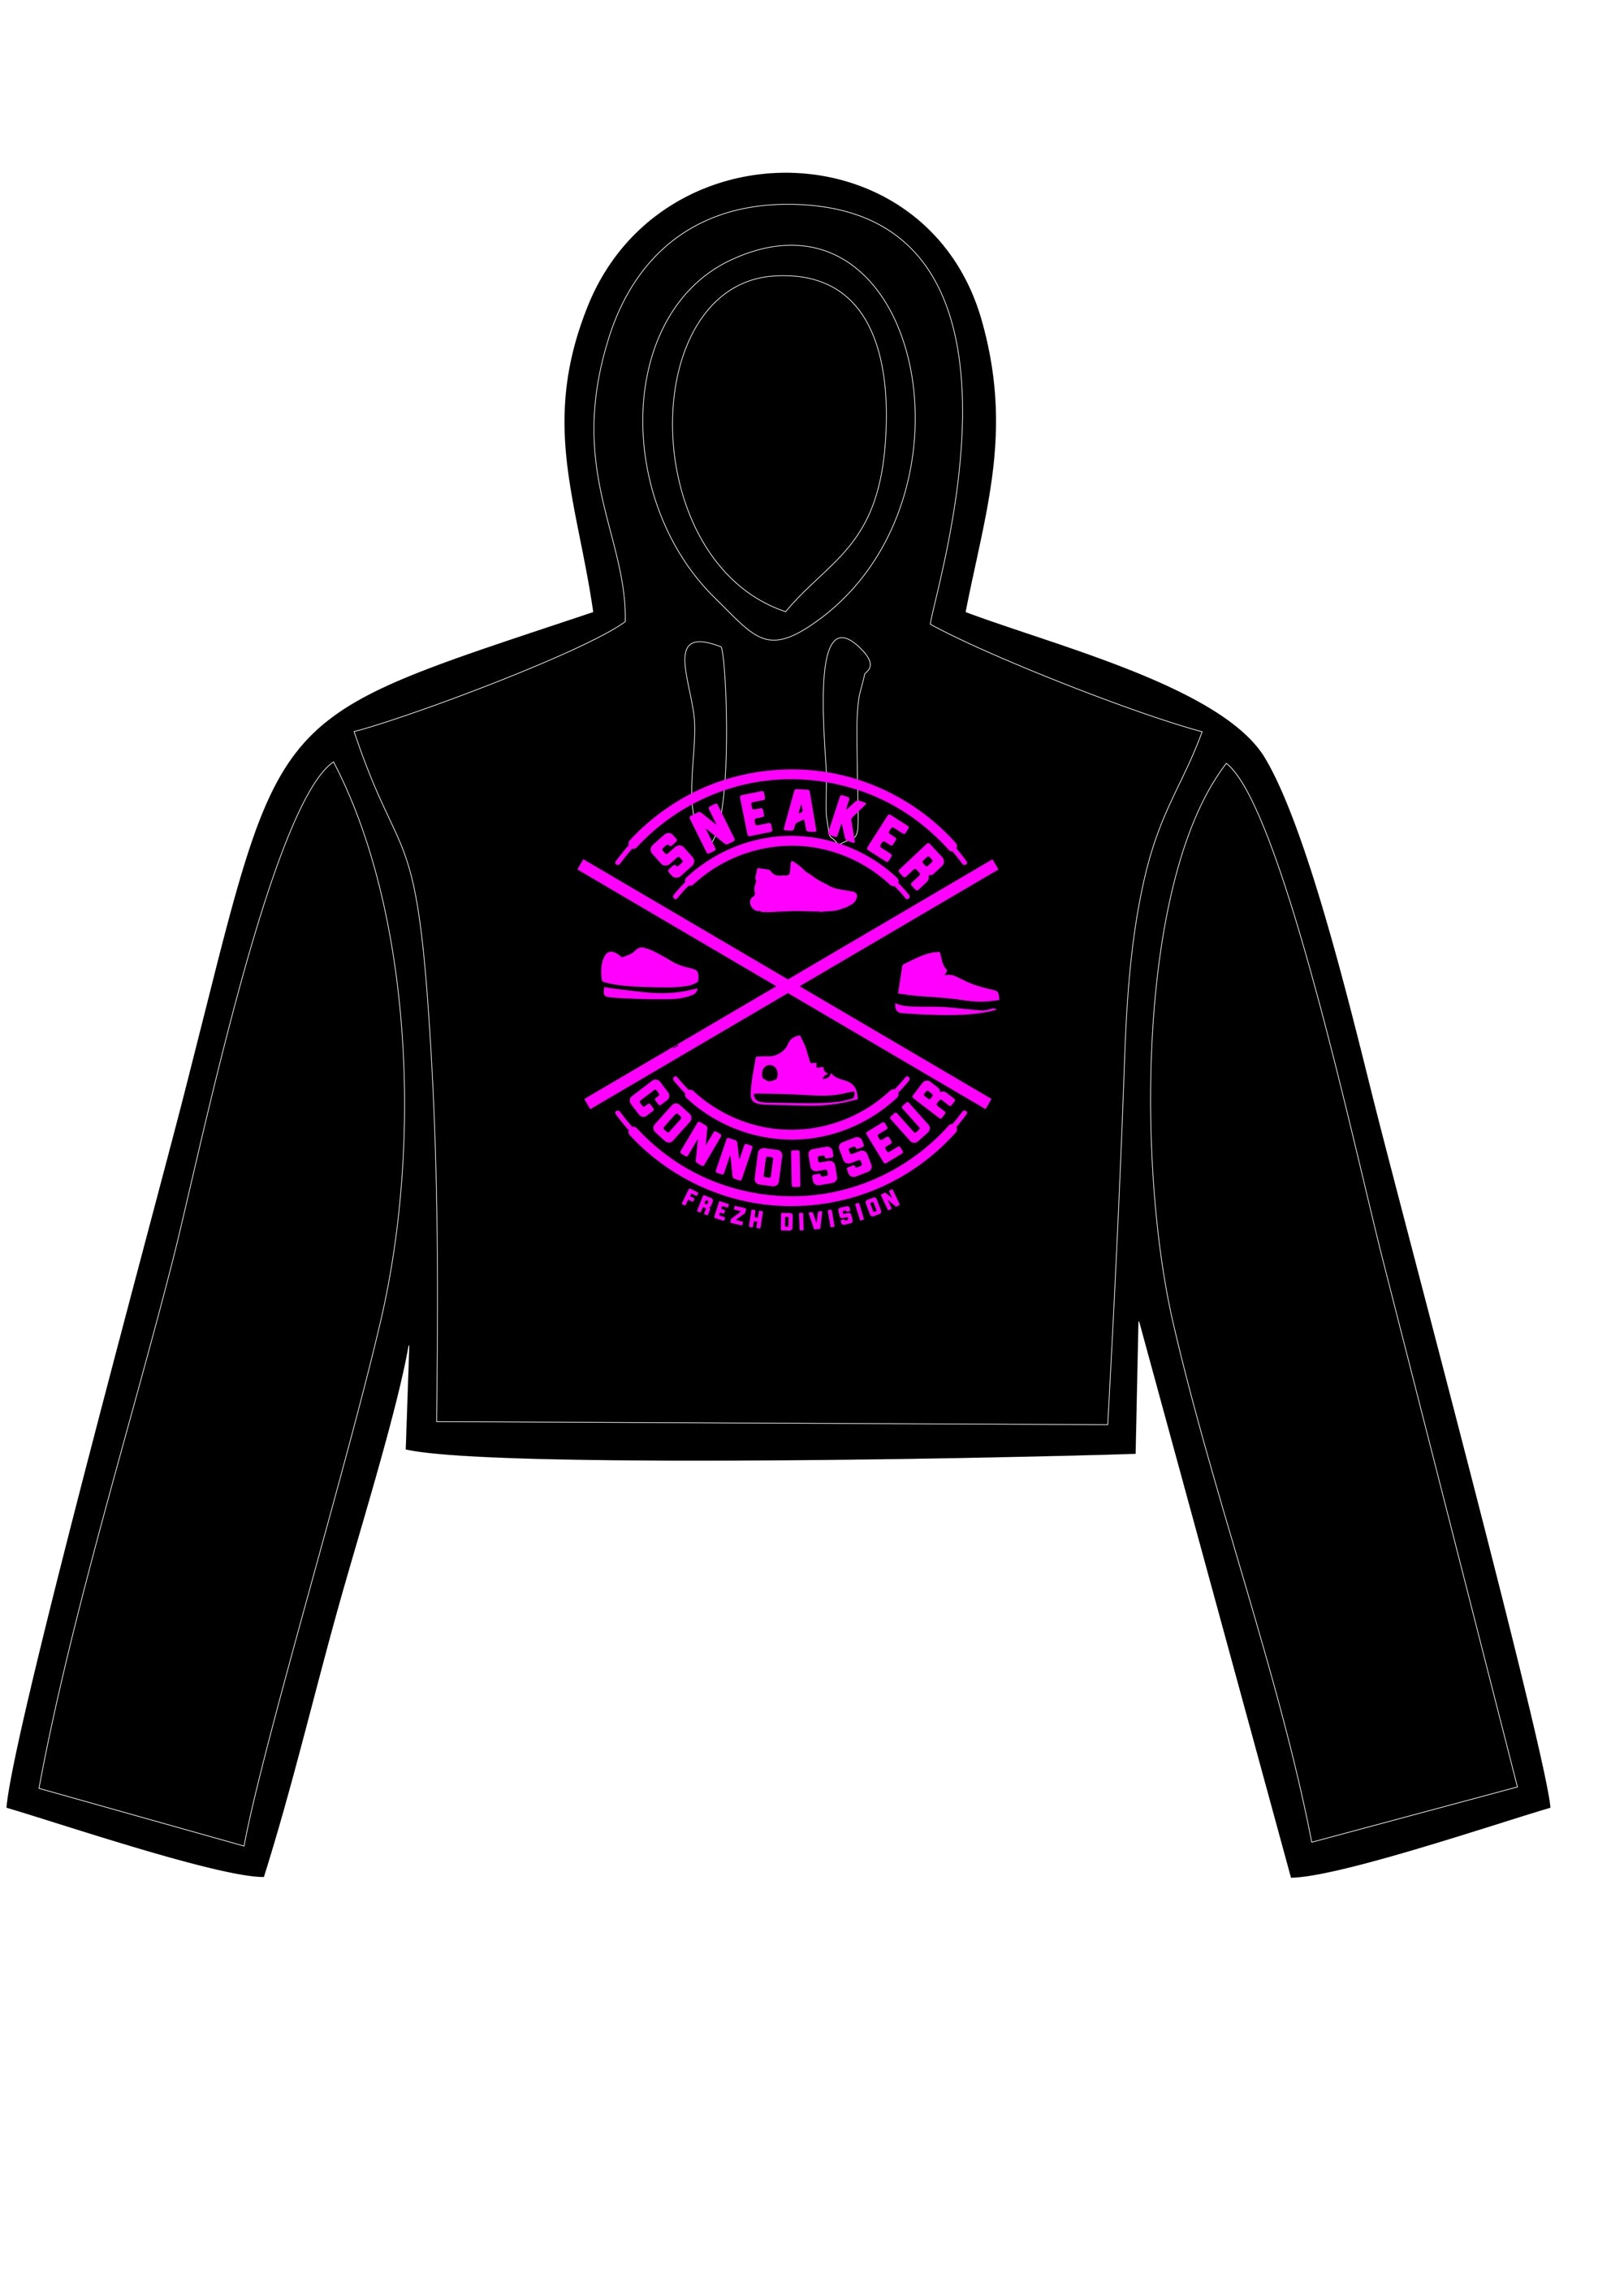 LADIES CROP SNEAKER CONNOISSEUR HOODIE V2 BLACK/PINK